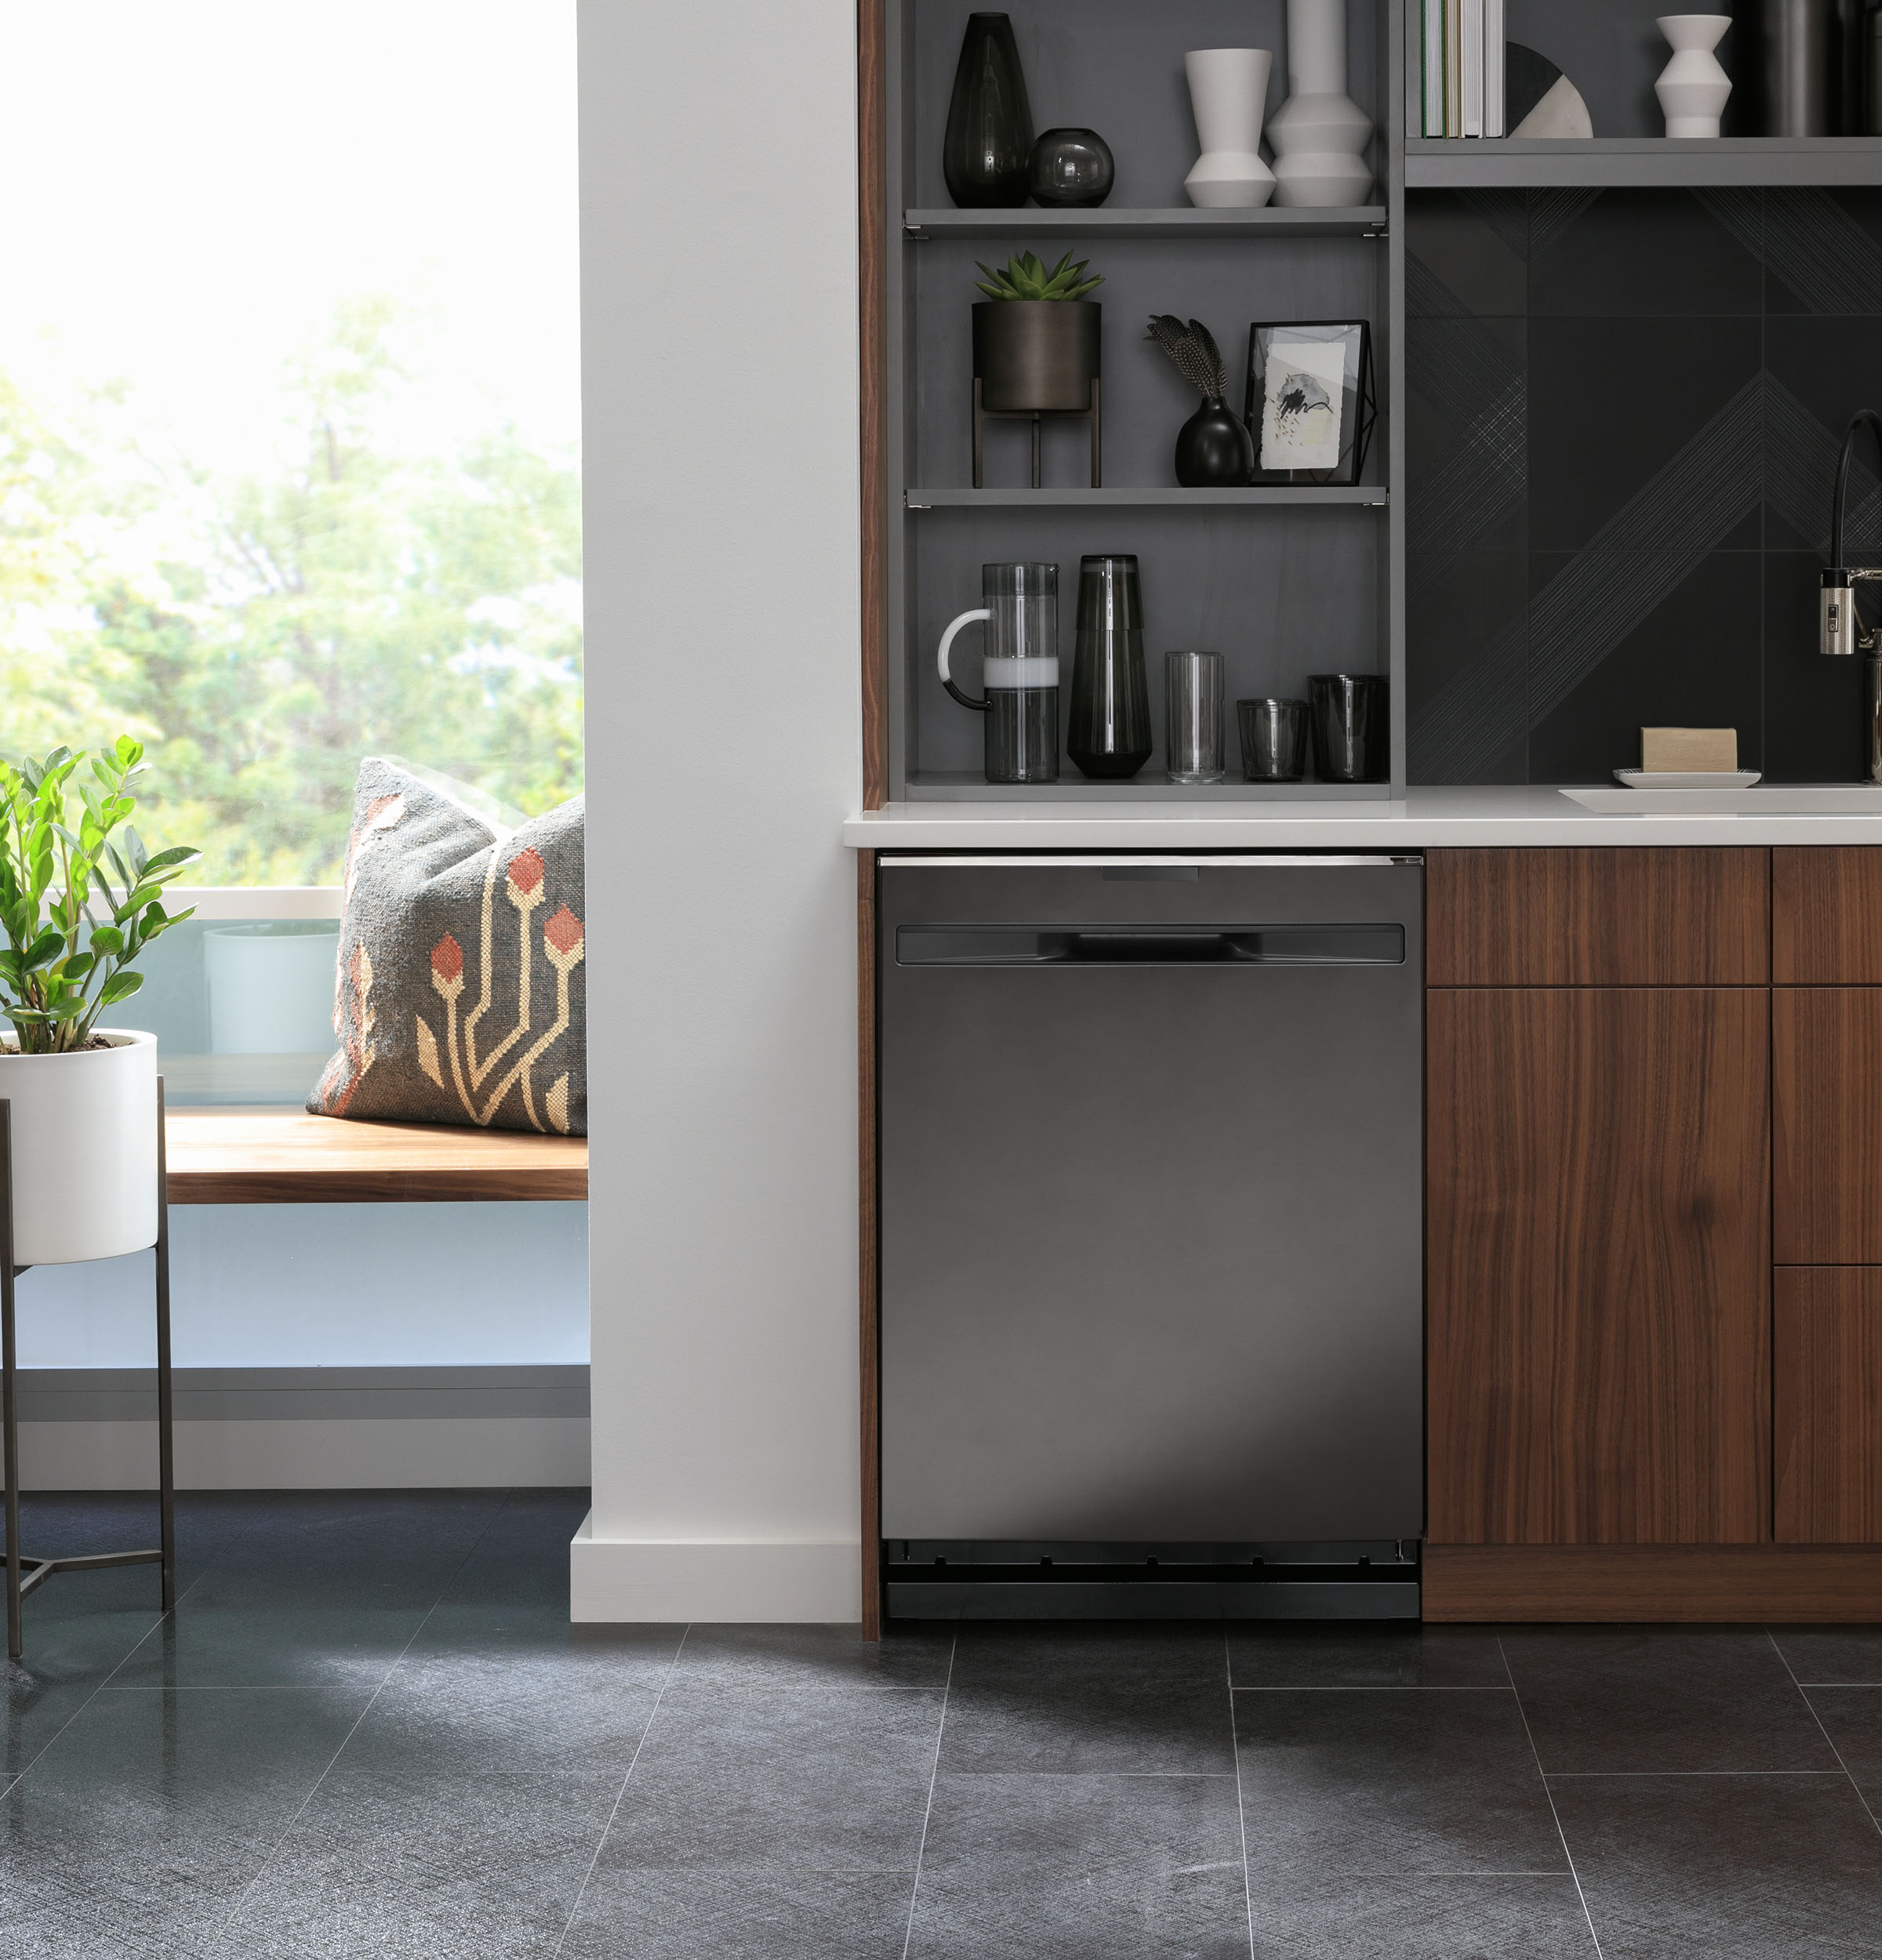 Model: PDP715SBNTS | GE Profile GE Profile™ Top Control with Stainless Steel Interior Dishwasher with Sanitize Cycle & Dry Boost with Fan Assist